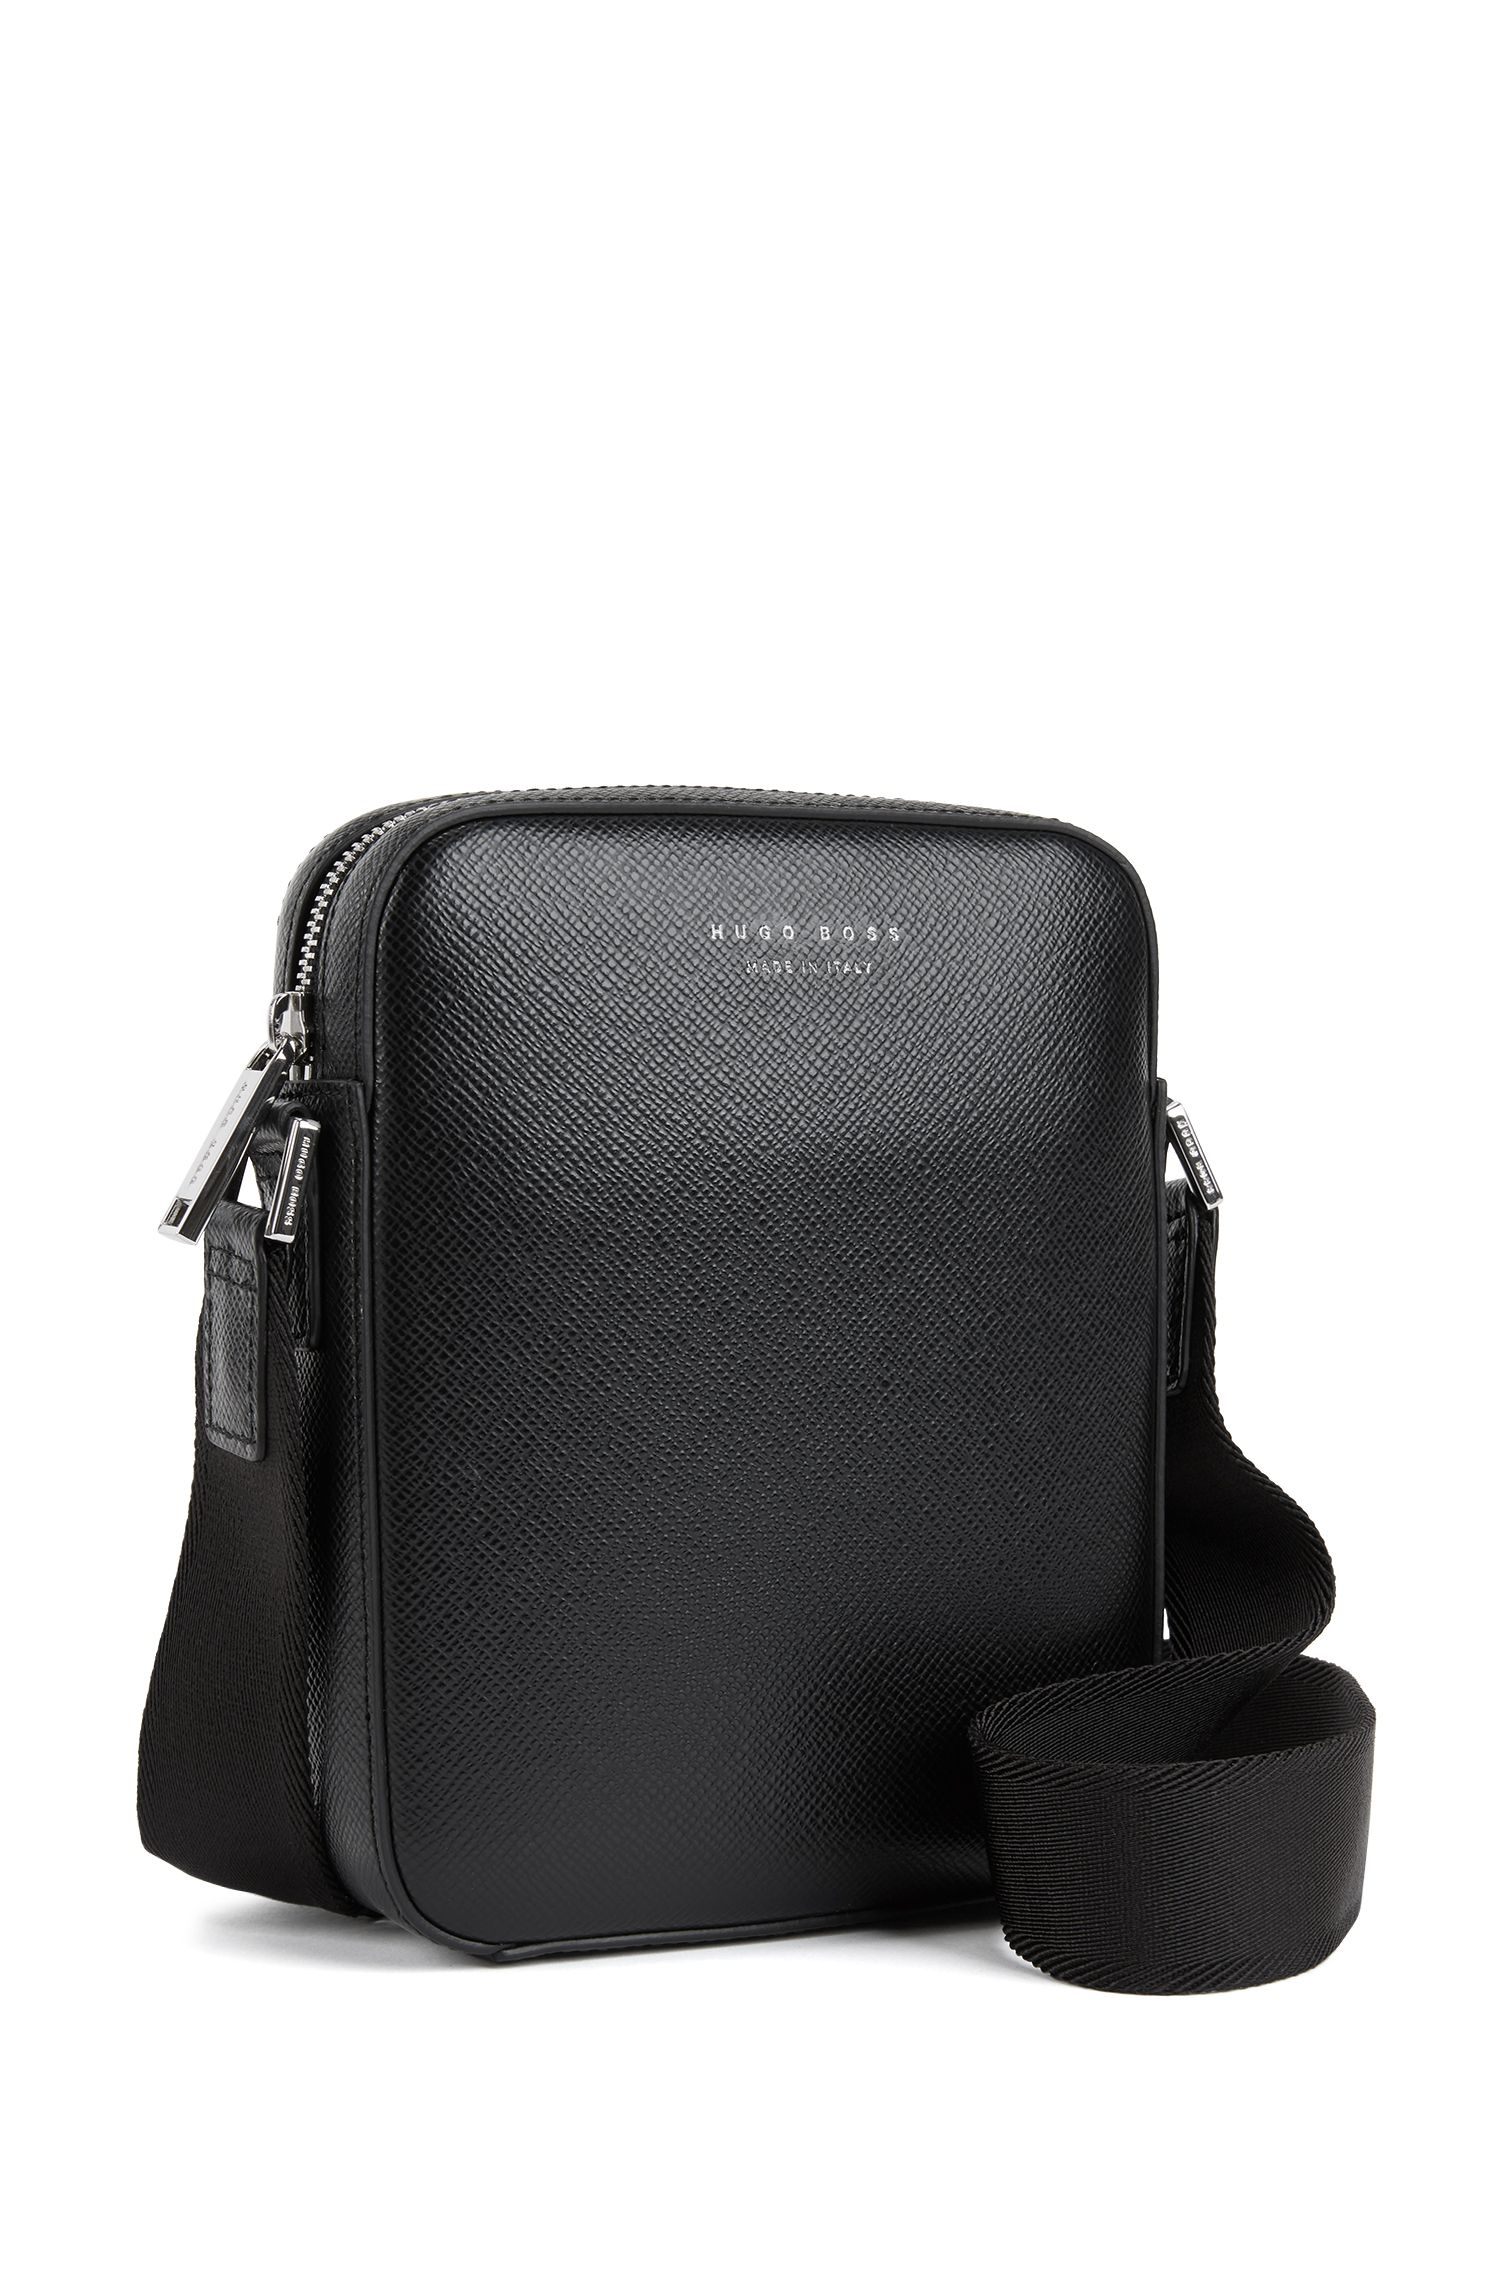 Signature Collection cross-body bag in structured Italian leather, Black